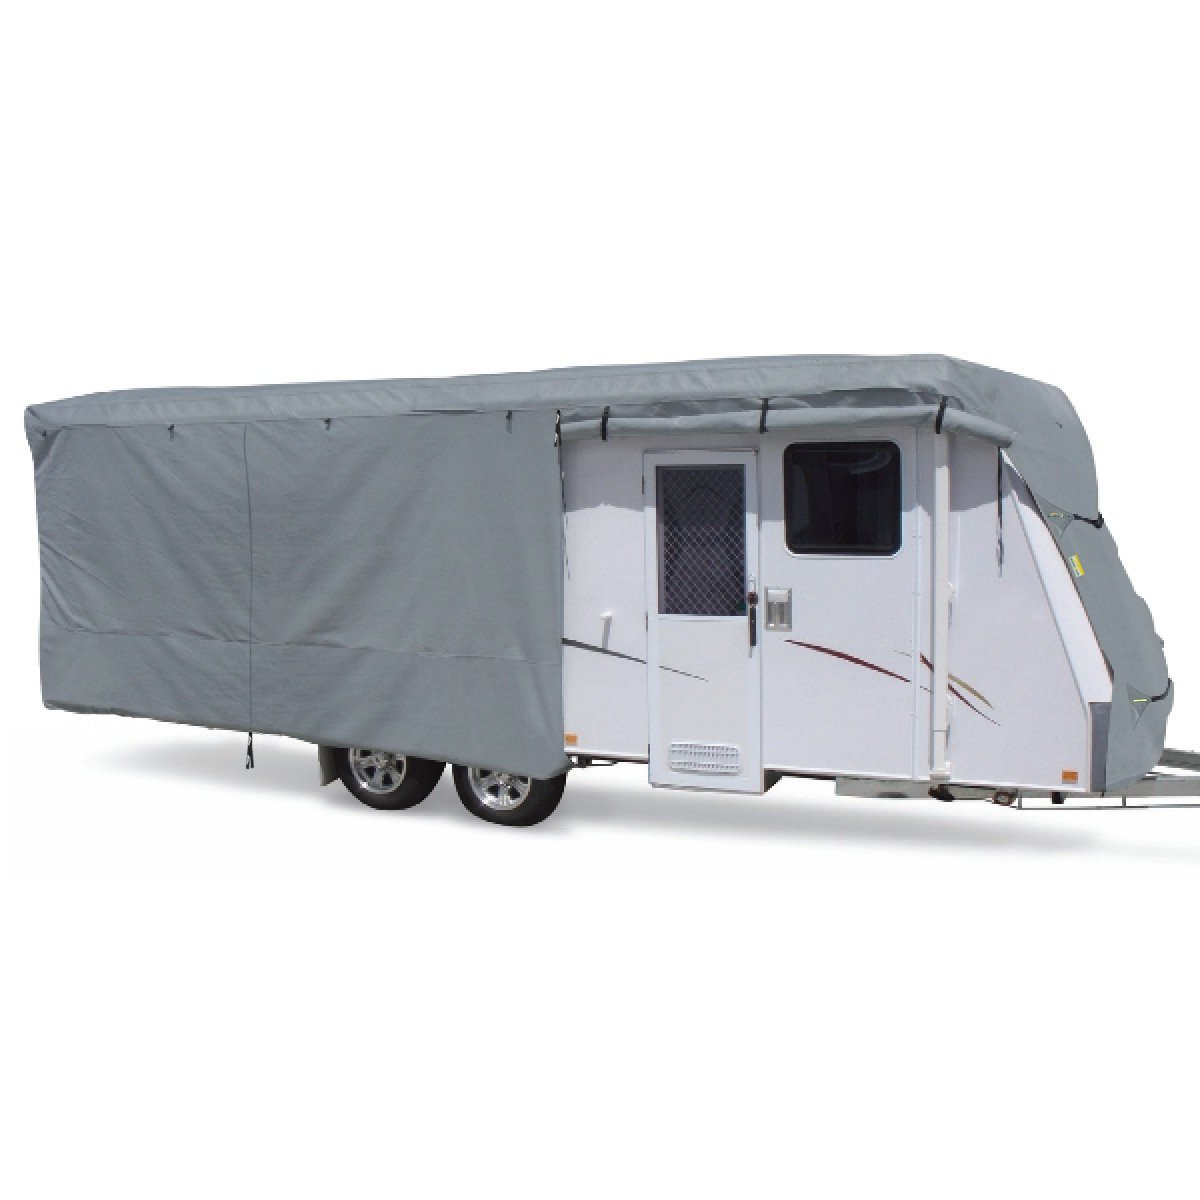 Summates Travel Trailer Cover RV Cover,Color Gray,Beige,160g SSFS 4 Layer Polypropylene Fabric,fits Most Sizes Gray, 16-20 Feet